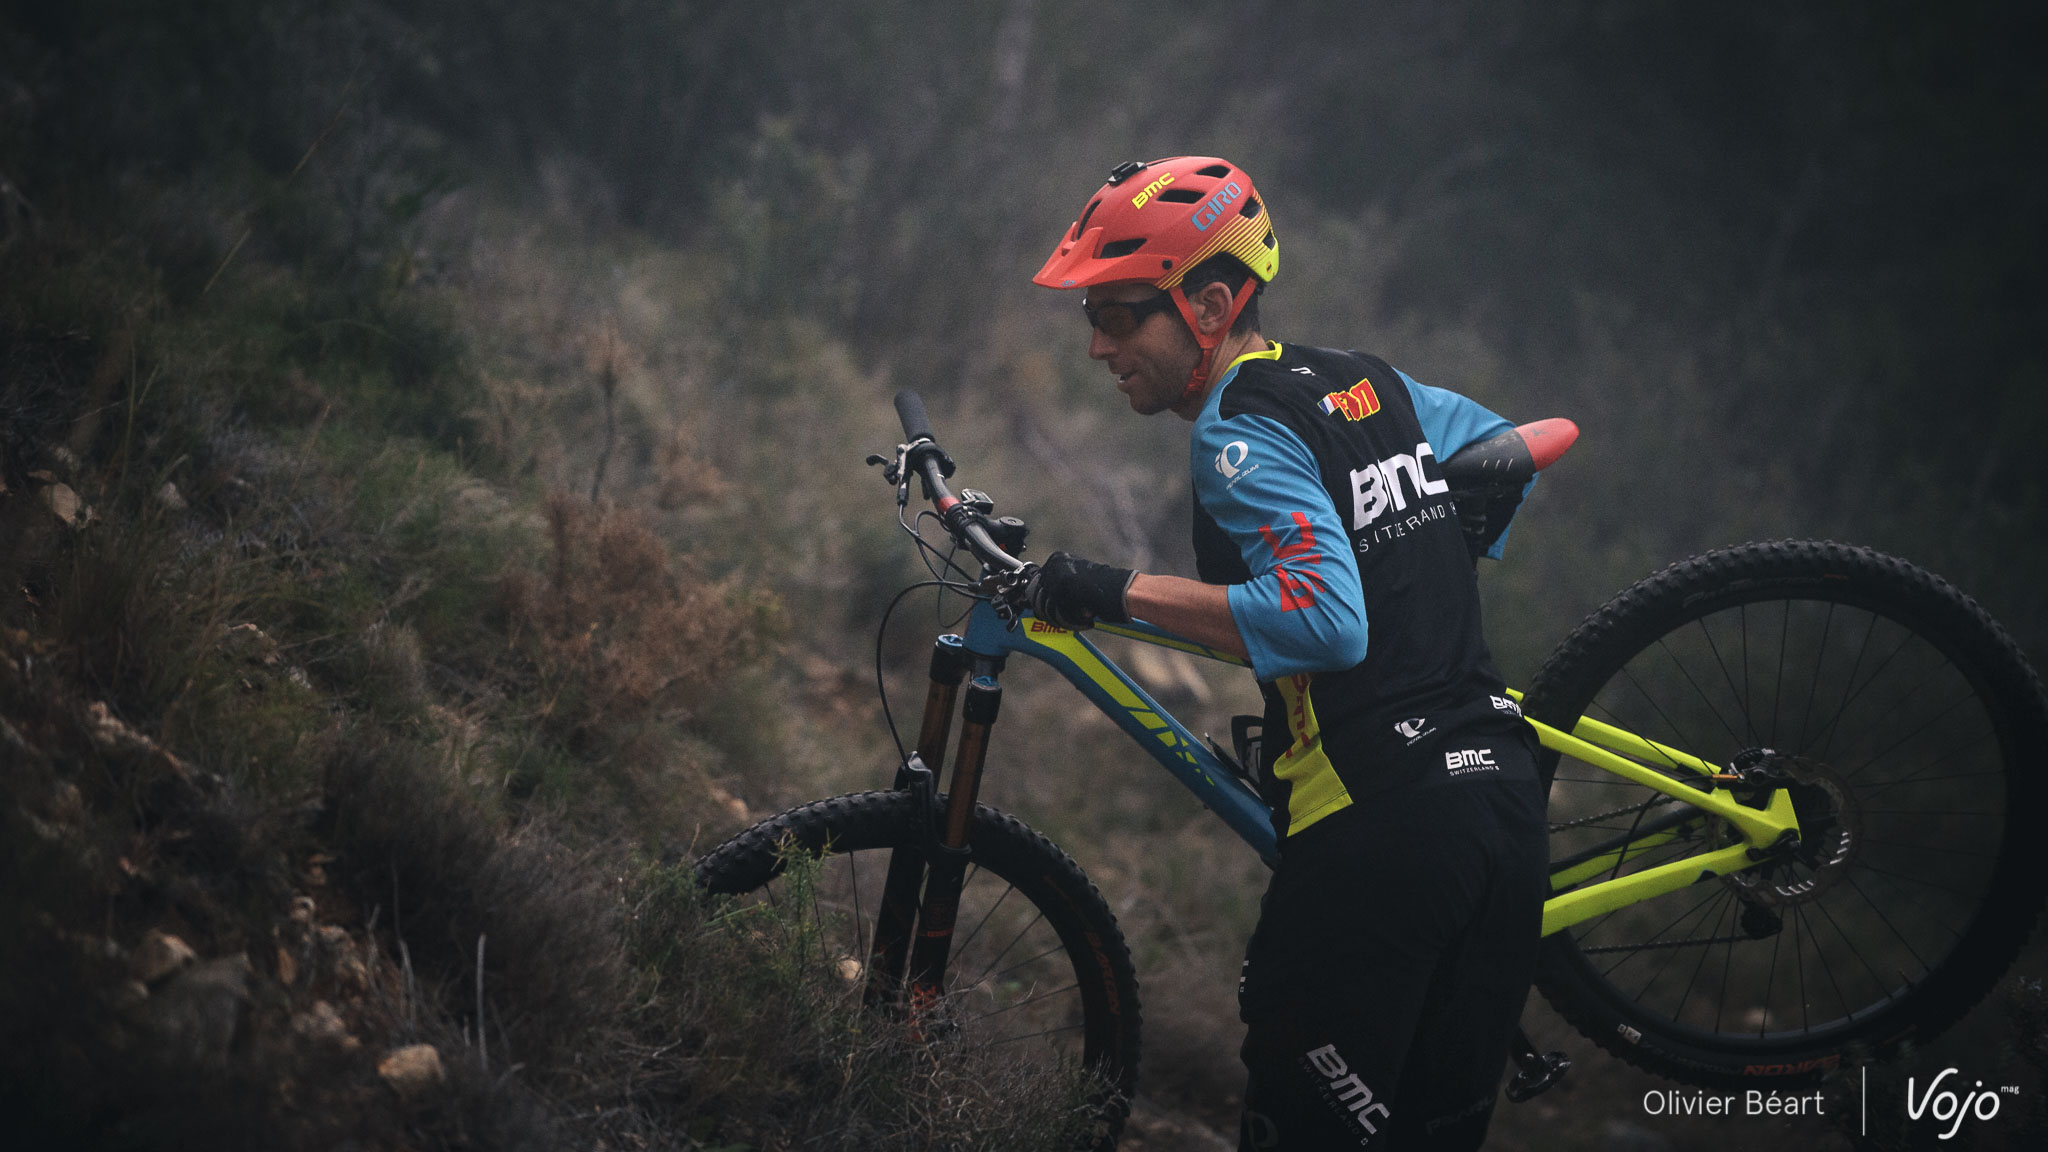 Francois_Bailly_Maitre_Interview_BMC_TrailCrew_Copyright_OBeart_VojoMag-1